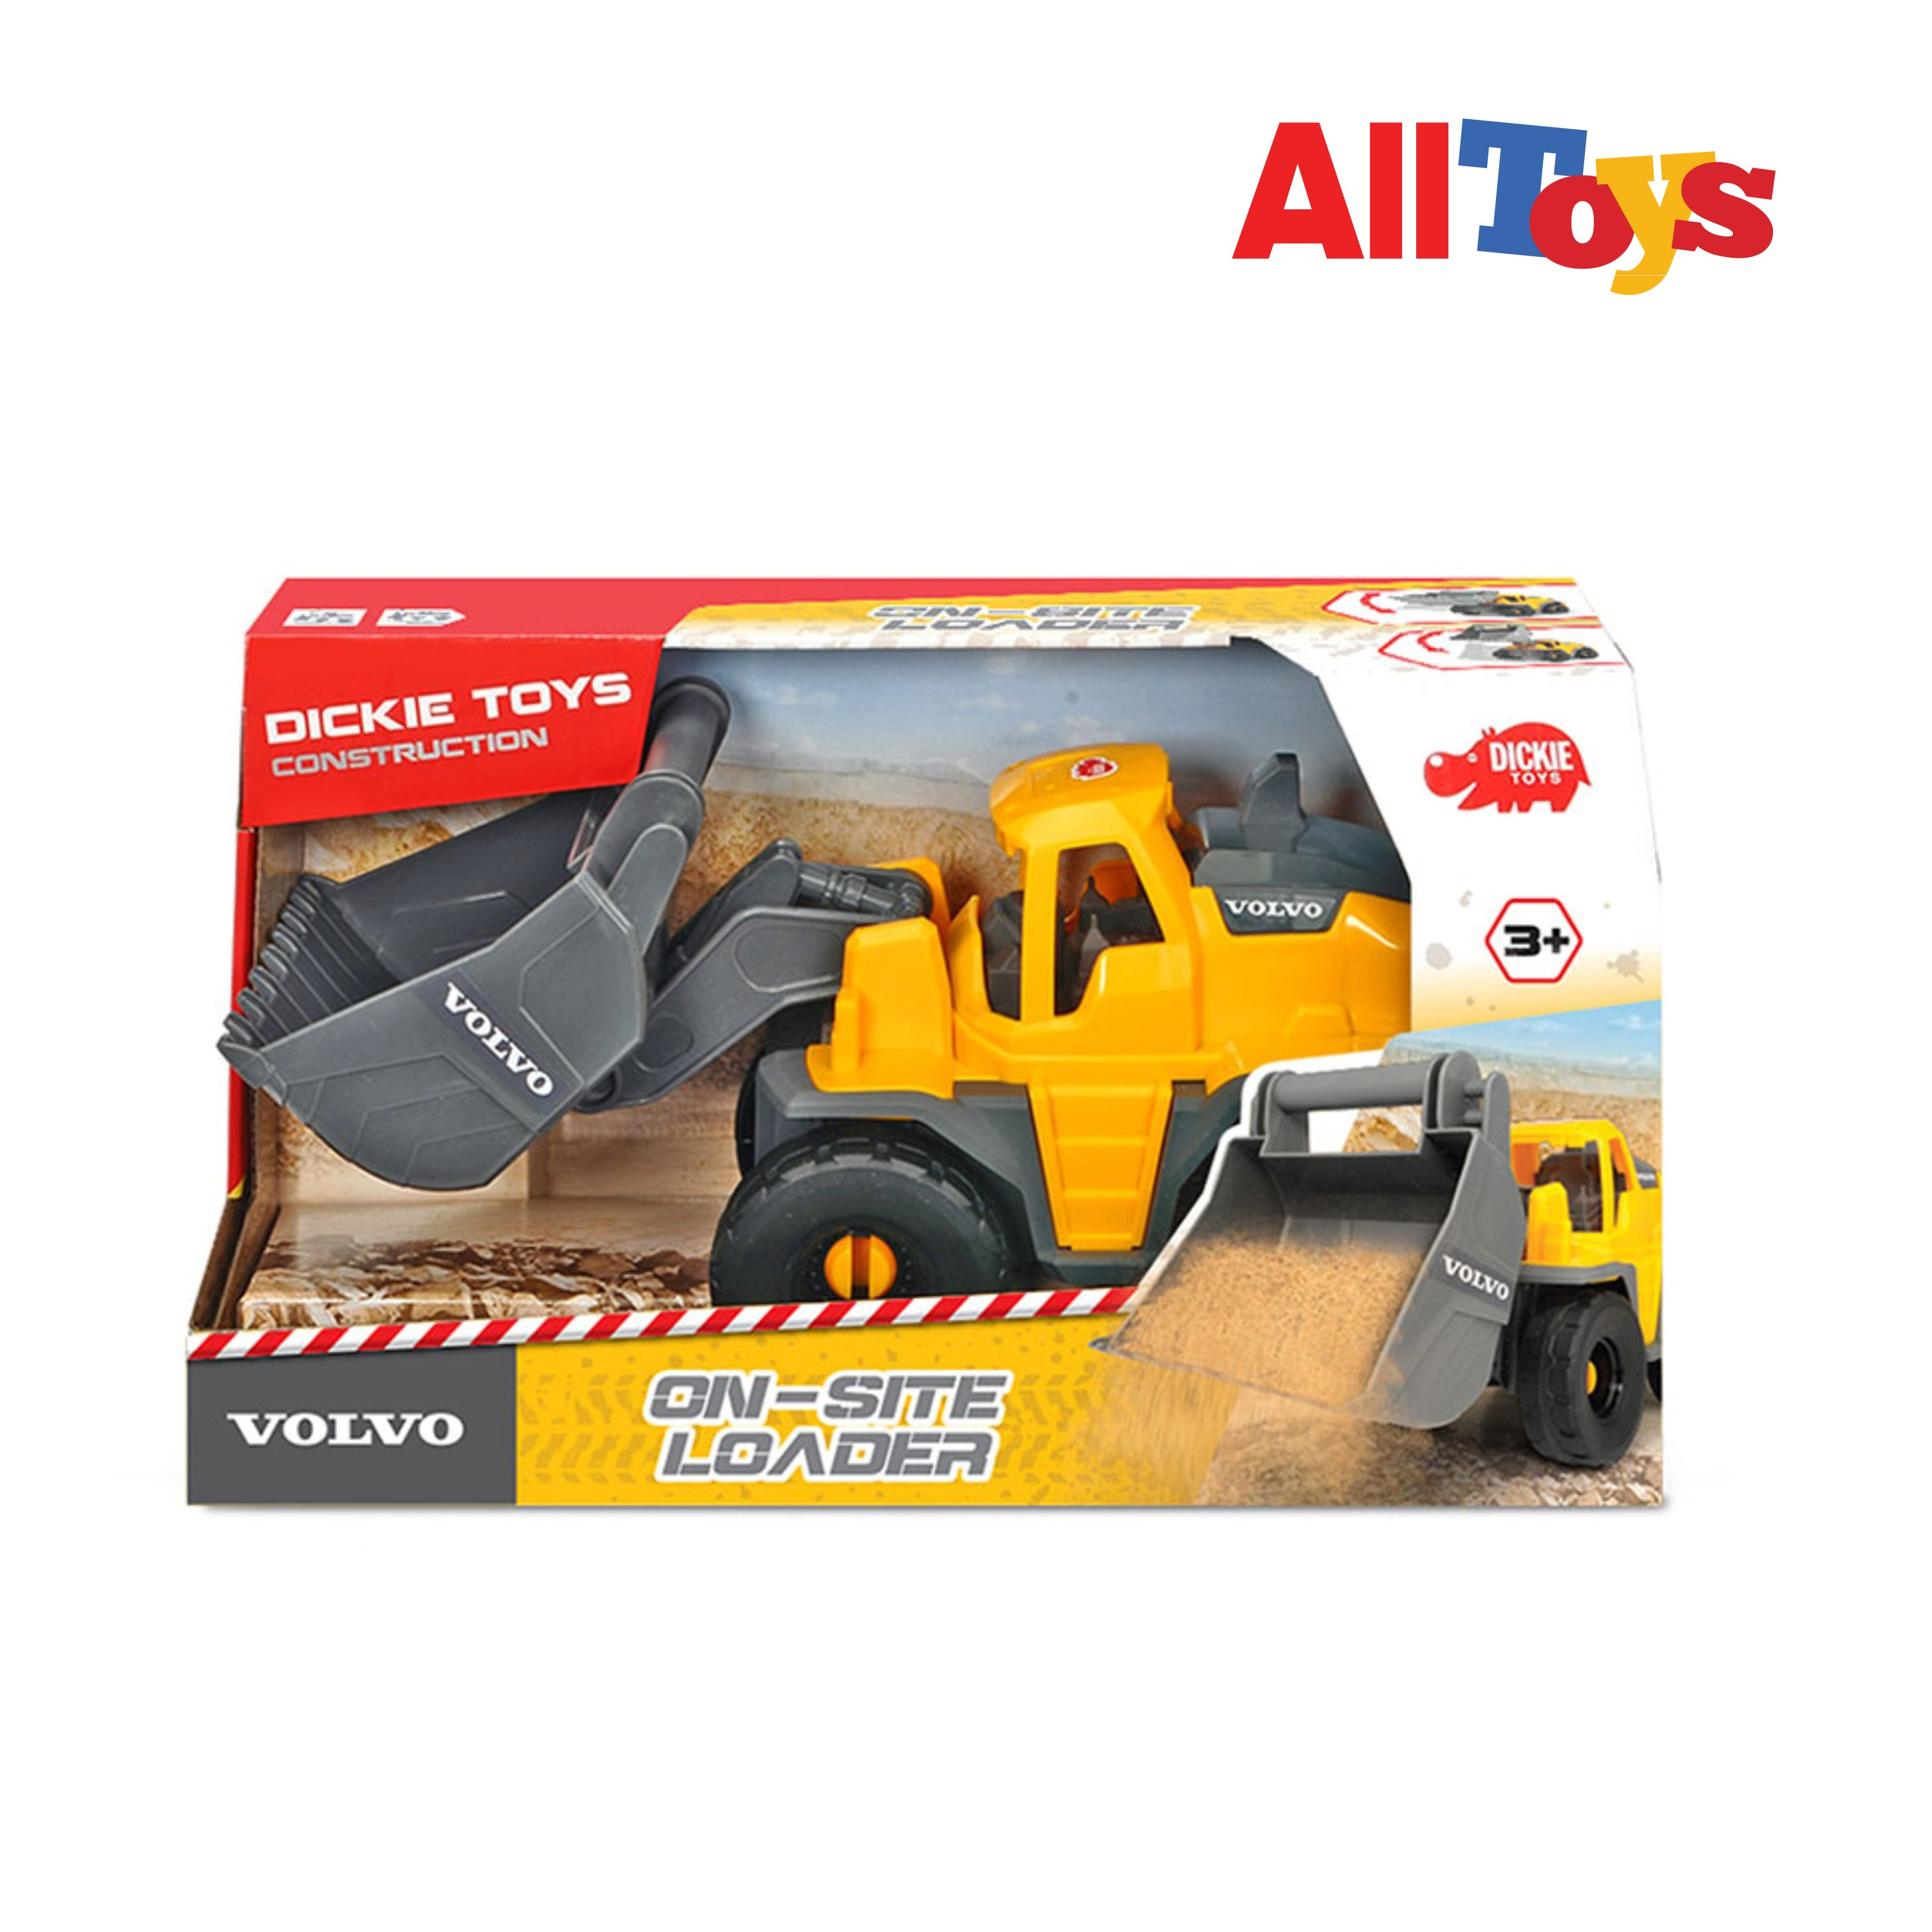 AllToys - Dickie Toys Volvo Wheel Loader